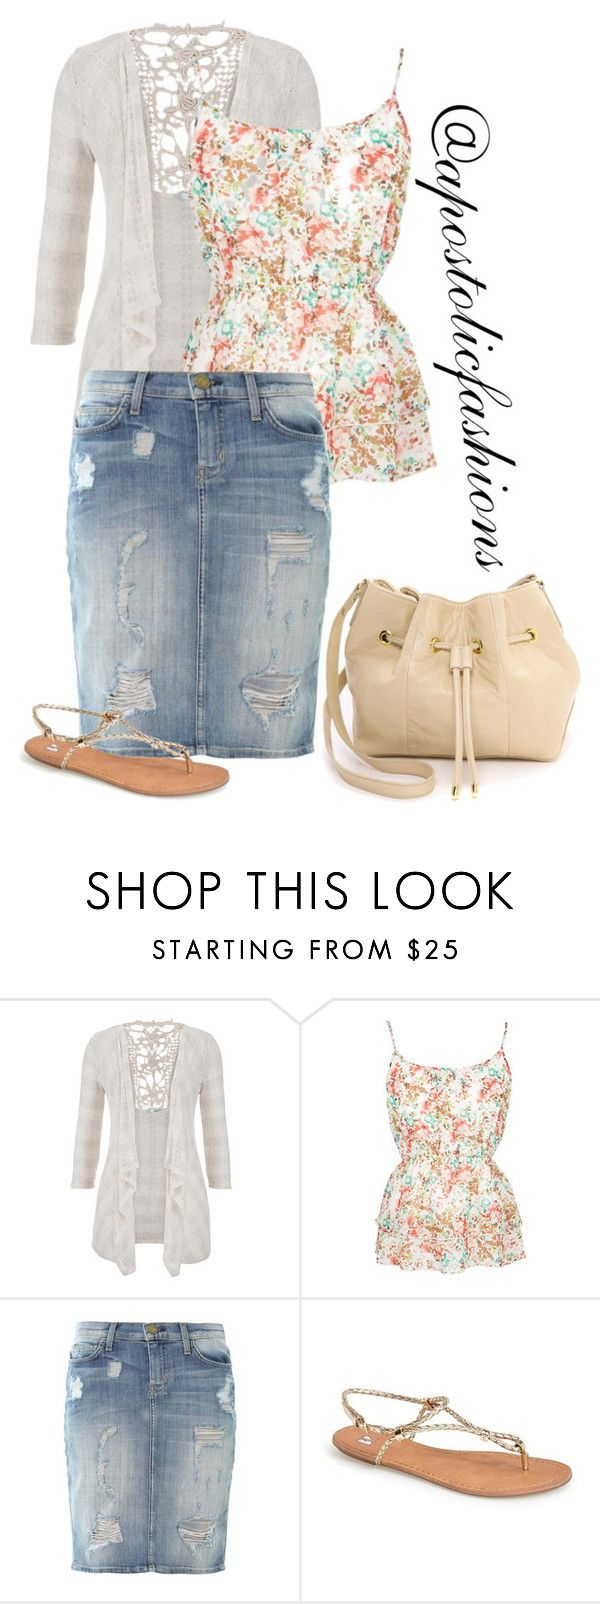 """Apostolic Fashions #1289"" by apostolicfashions on Polyvore featuring maurices, Current/Elliott, BP. and Lauren Merkin"